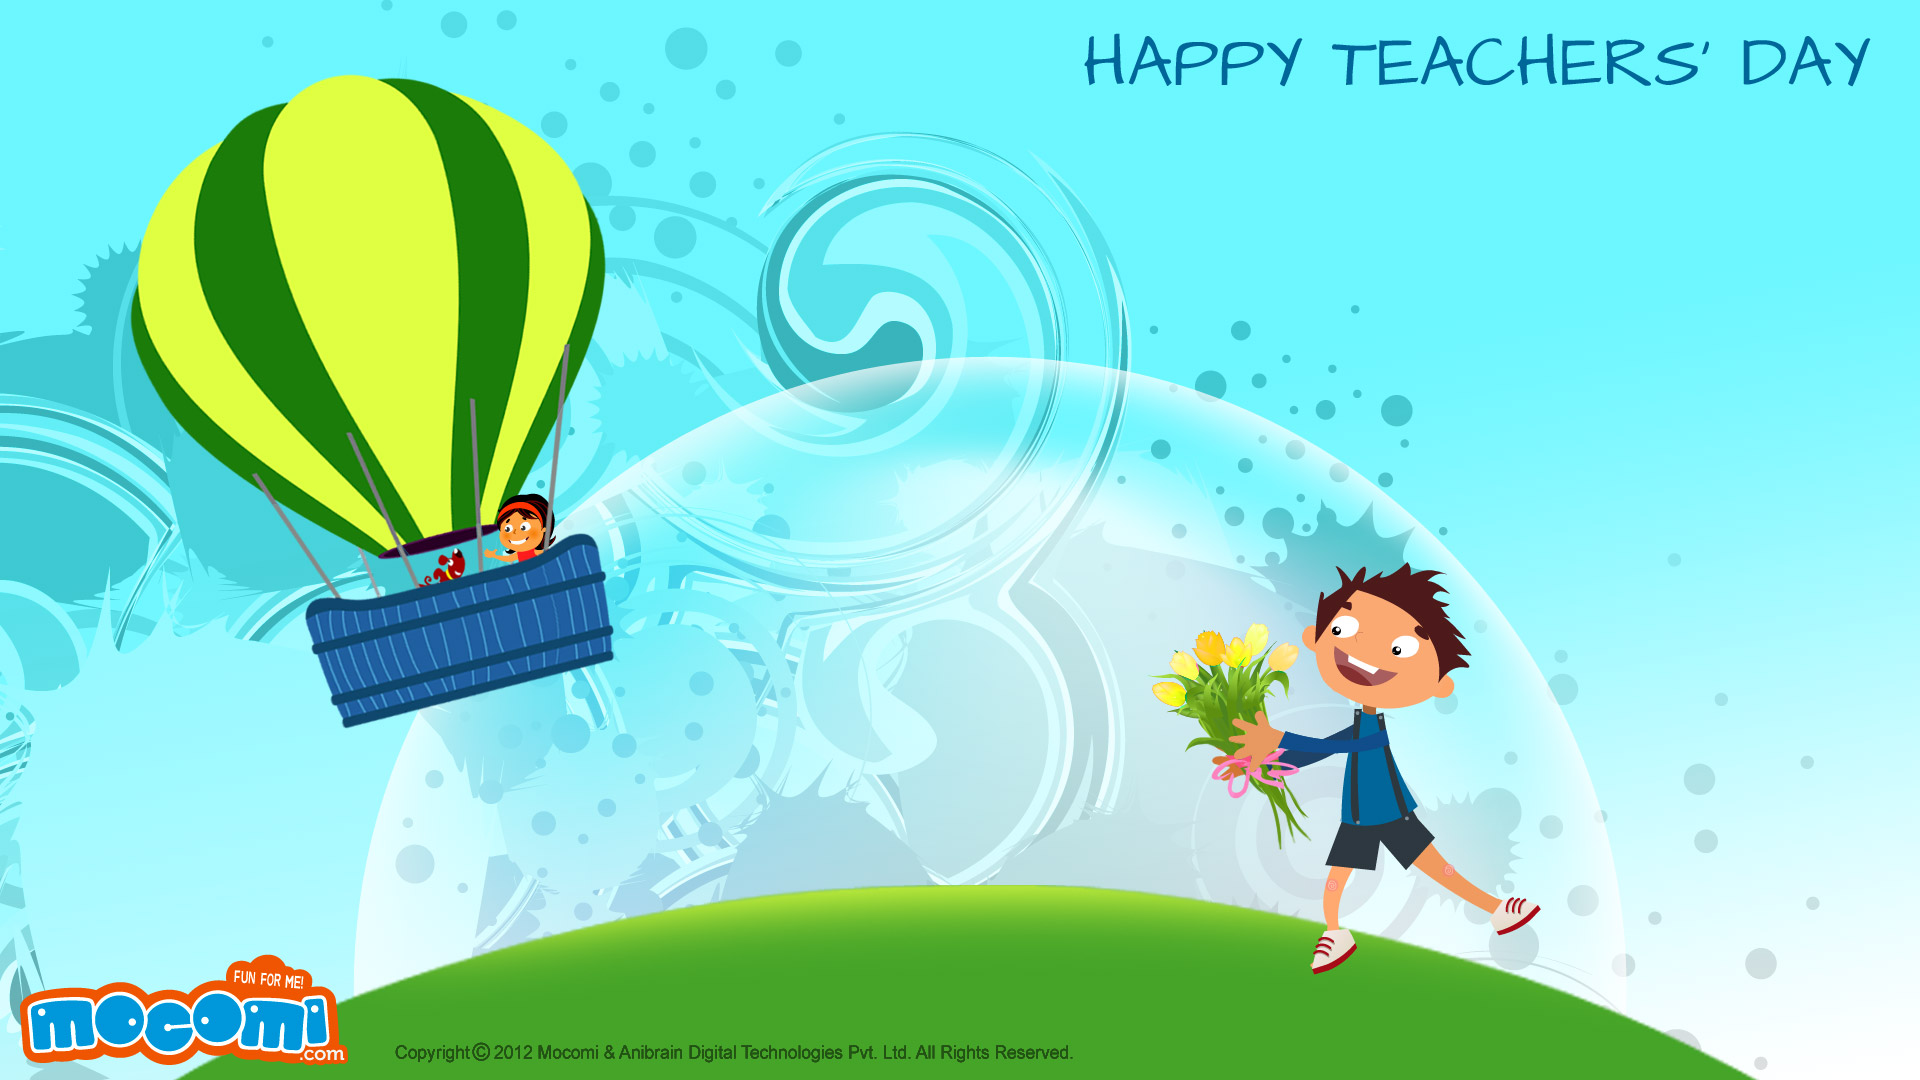 Happy Teachers' Day! 02